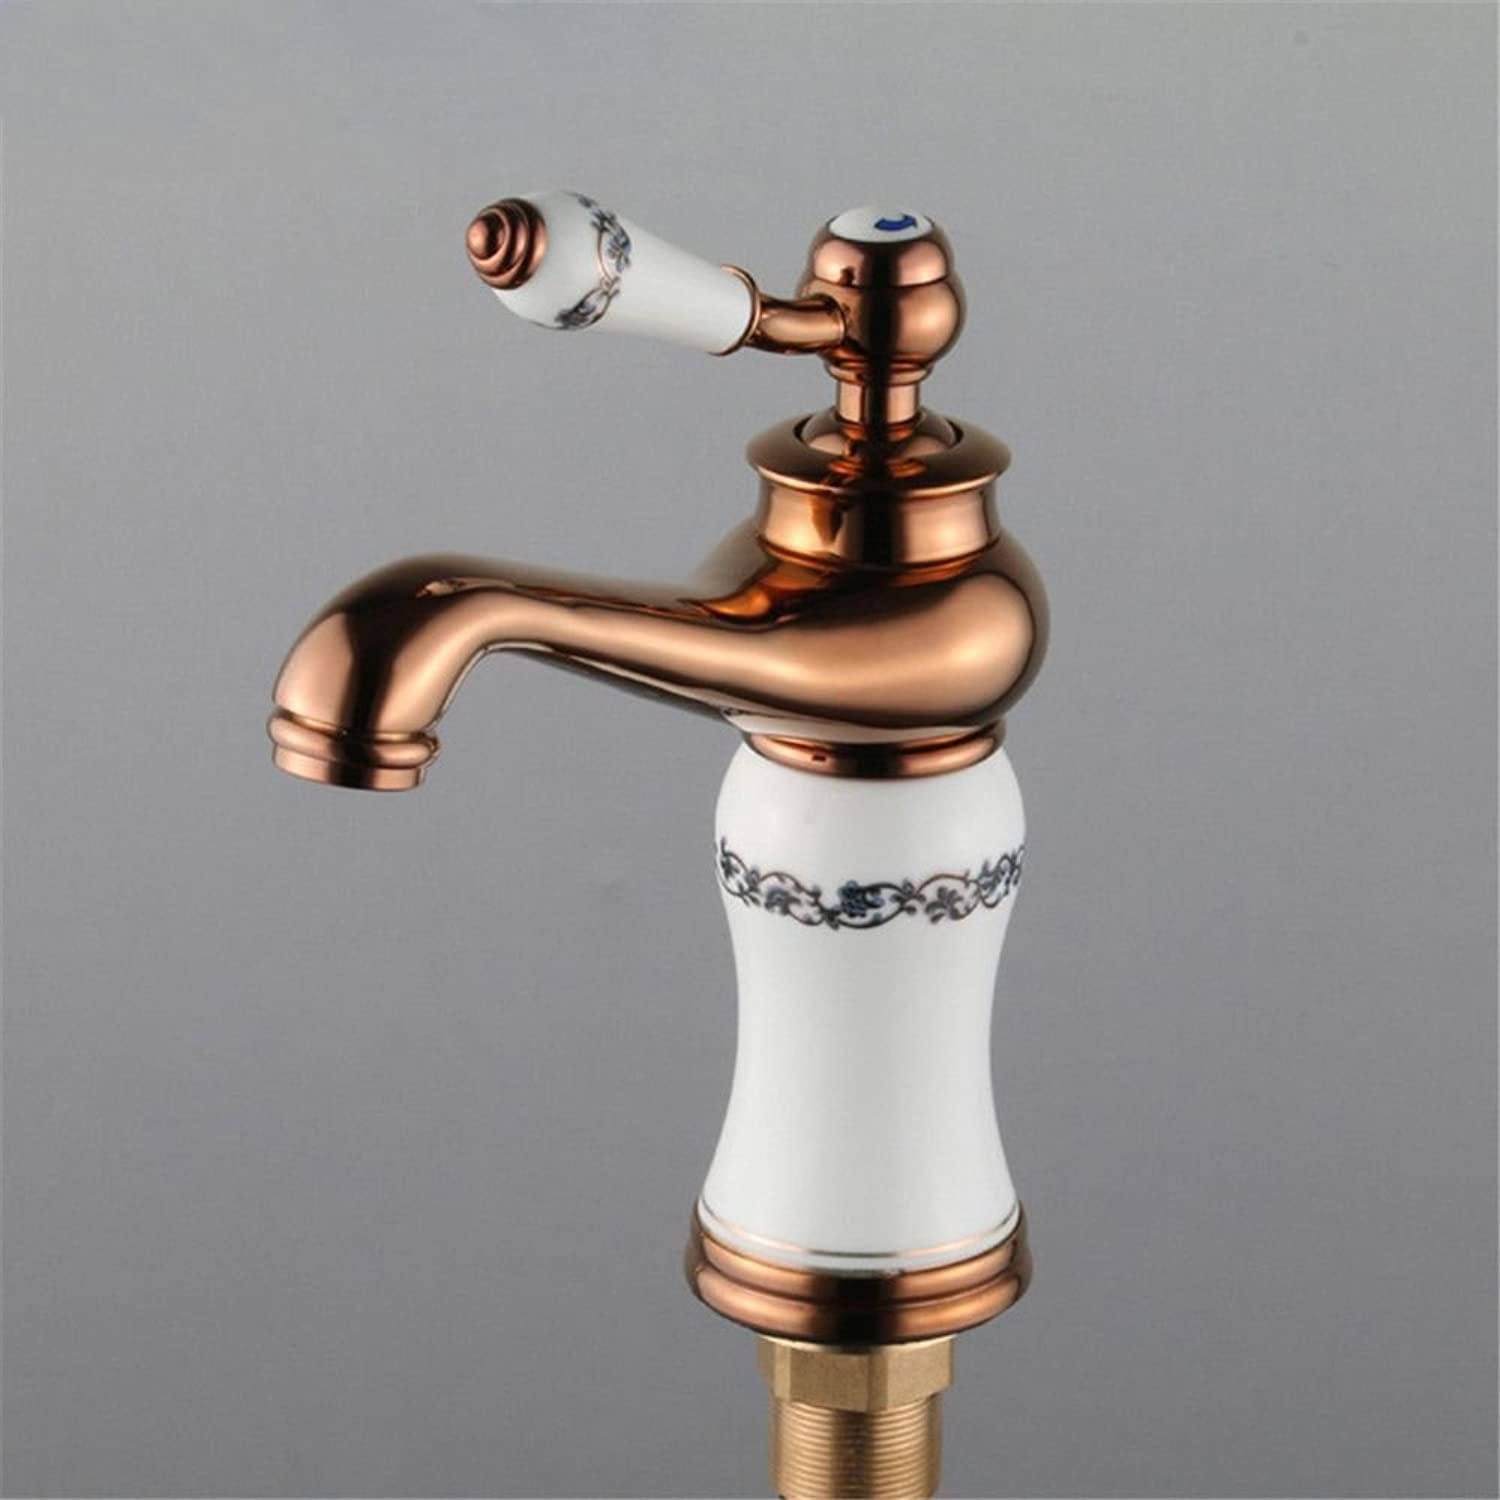 ETERNAL QUALITY Bathroom Sink Basin Tap Brass Mixer Tap Washroom Mixer Faucet pink gold-copper natural jade hot and cold water faucets antique pink gold basin Faucet Kitc